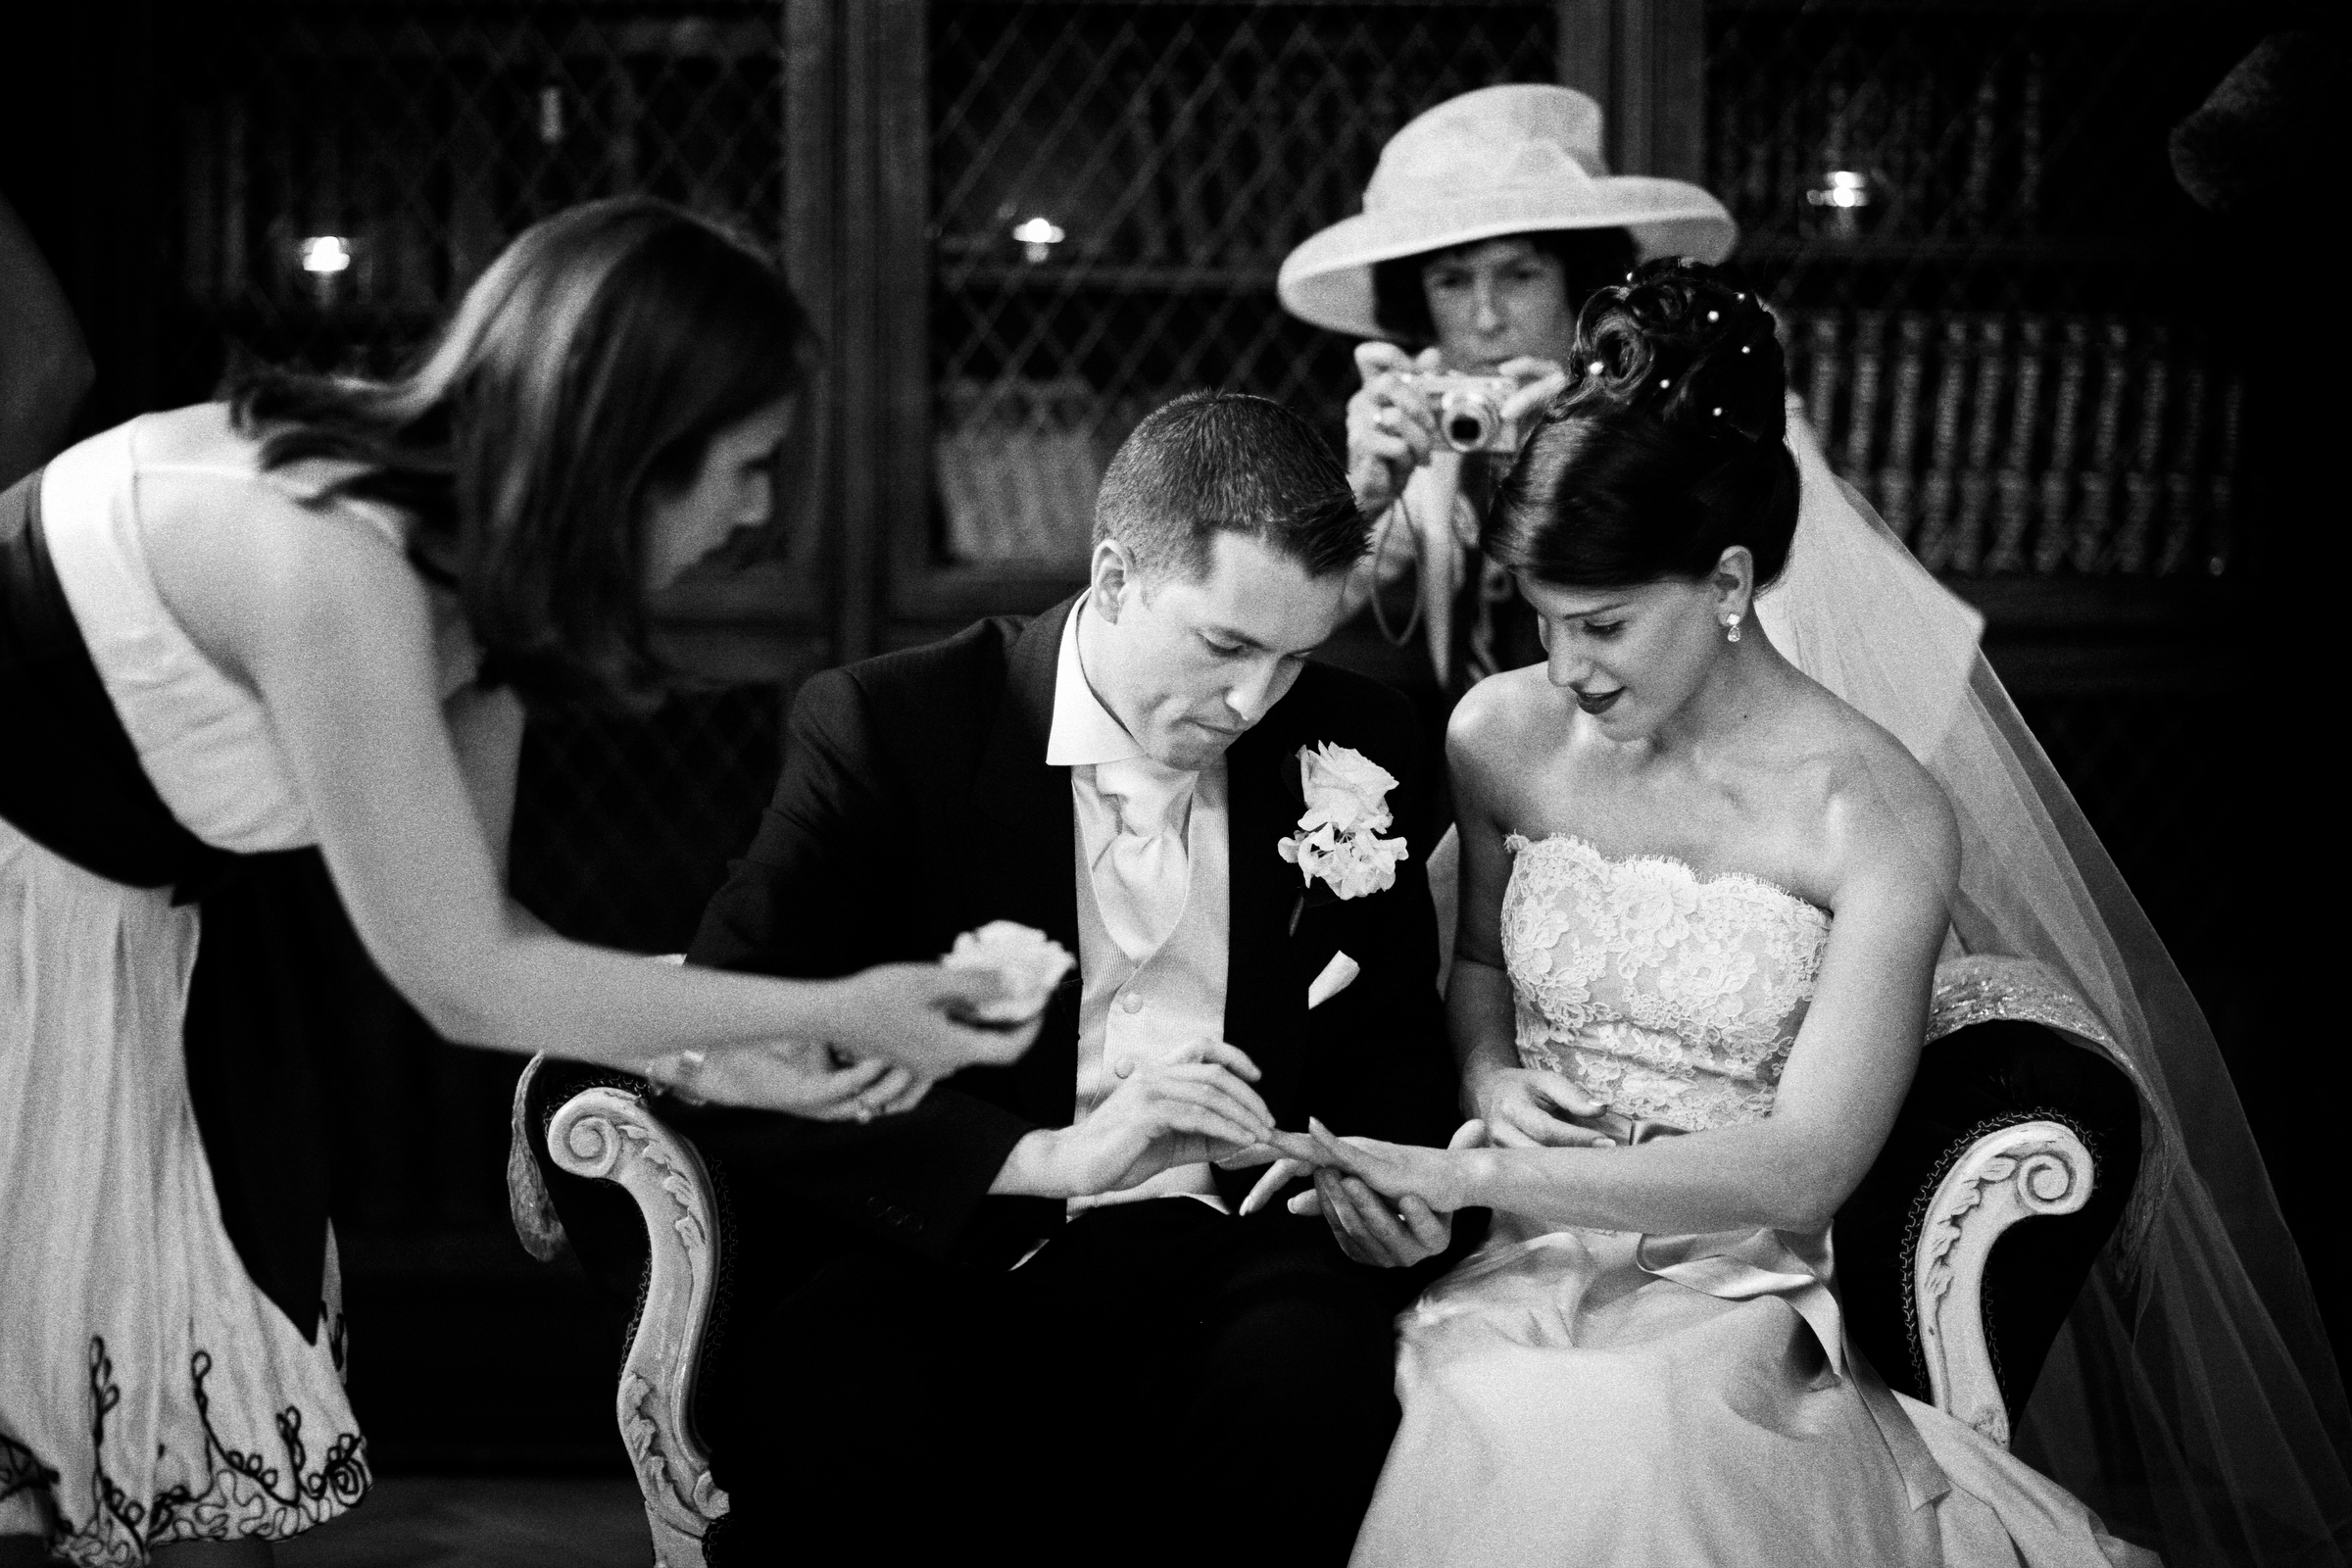 Couple signs their wedding license while mom snaps picture - photo by Jeff Ascough